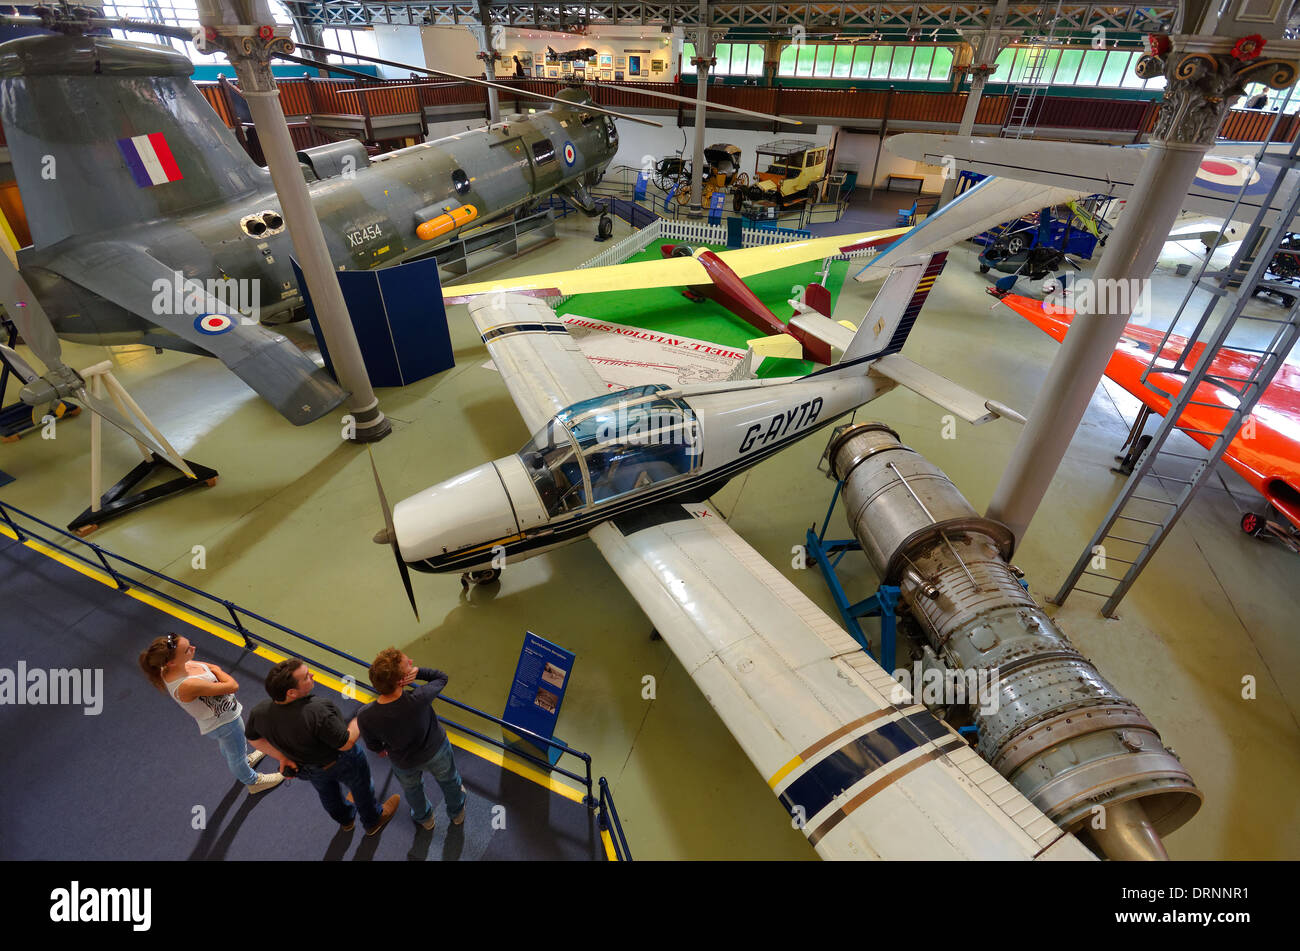 Interior of the Manchester Air and Space Museum, part of the Museum of Science and Industry, Manchester, England - Stock Image